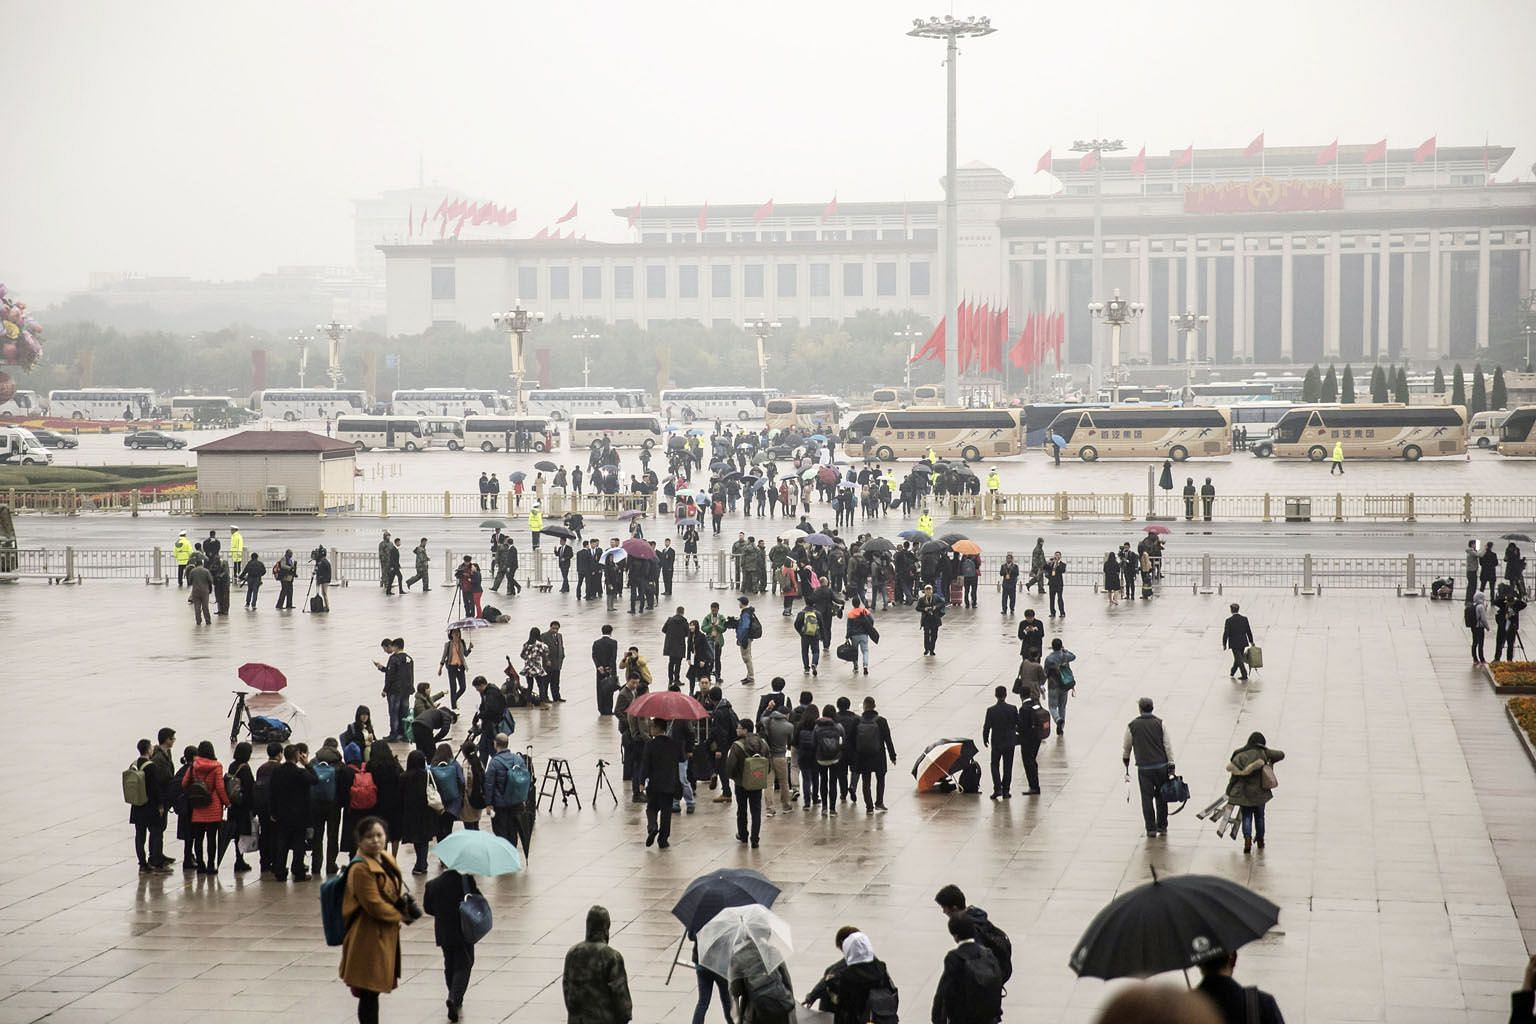 The scene outside the Great Hall of the People after the opening of the 19th National Congress of the Communist Party of China in Beijing, on Wednesday. General Secretary Xi Jinping talked about a major-country diplomacy with Chinese characteristics